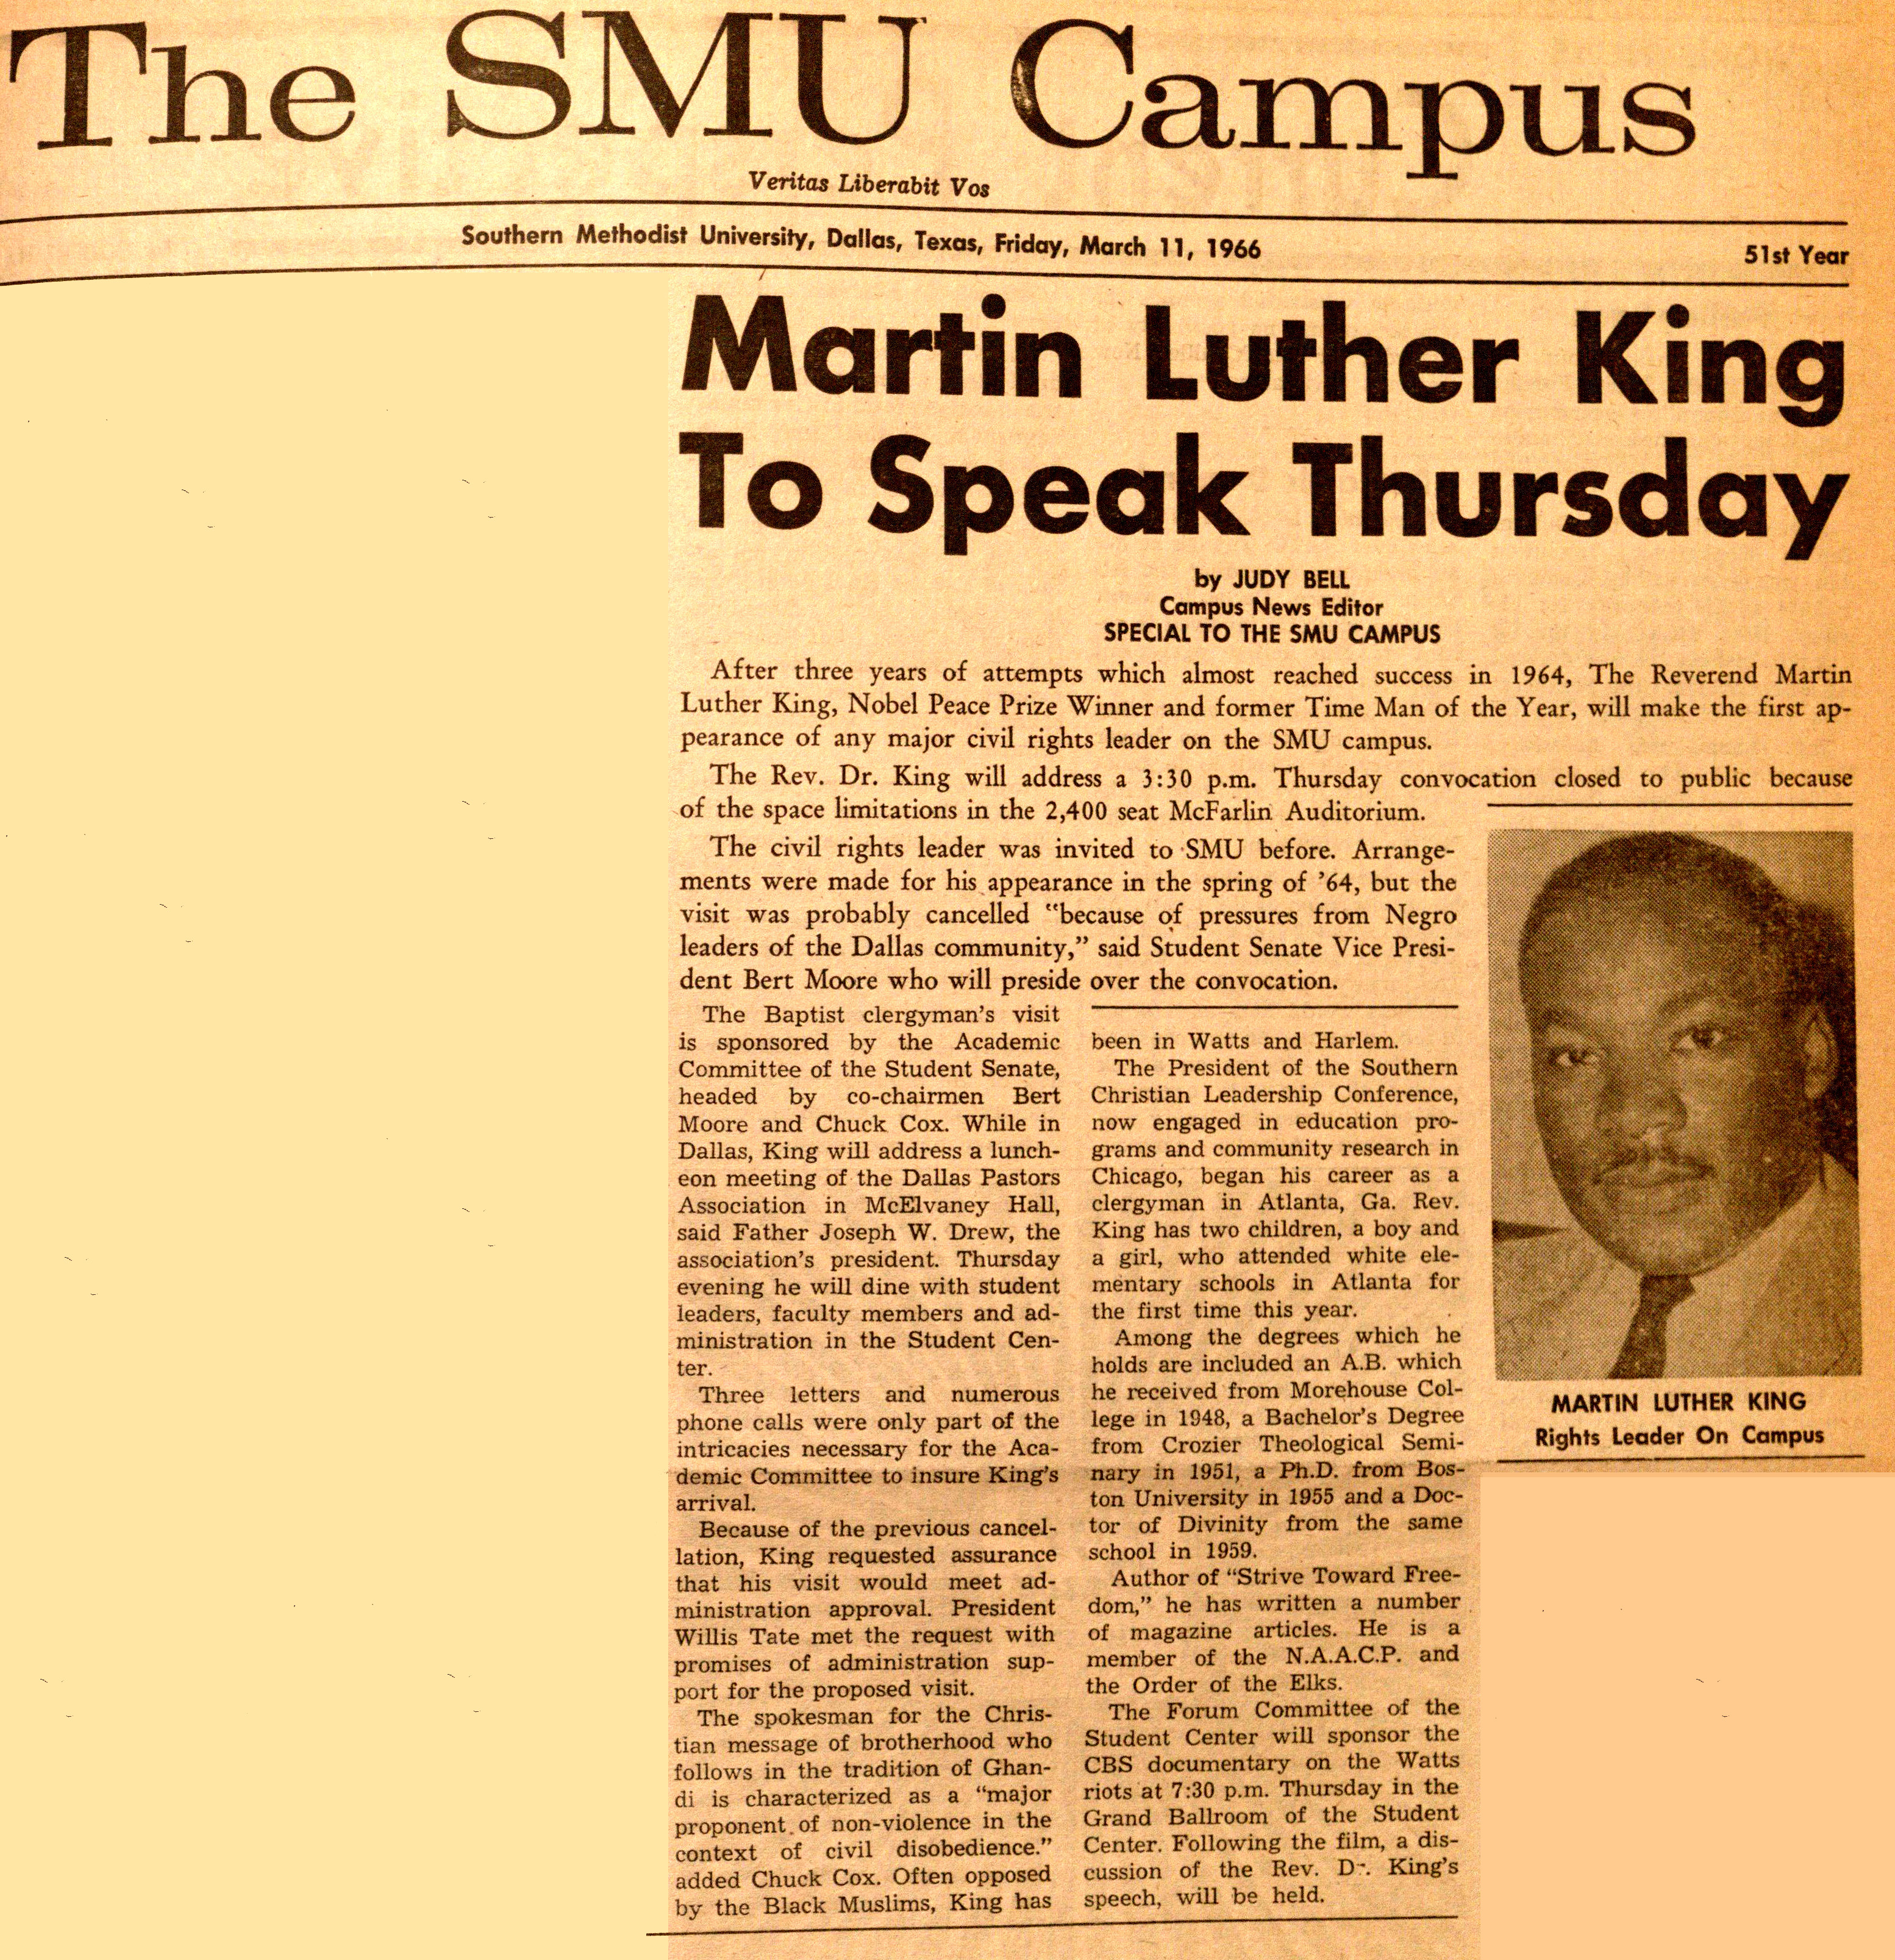 Dr. Martin Luther King Jr. at SMU in 1966